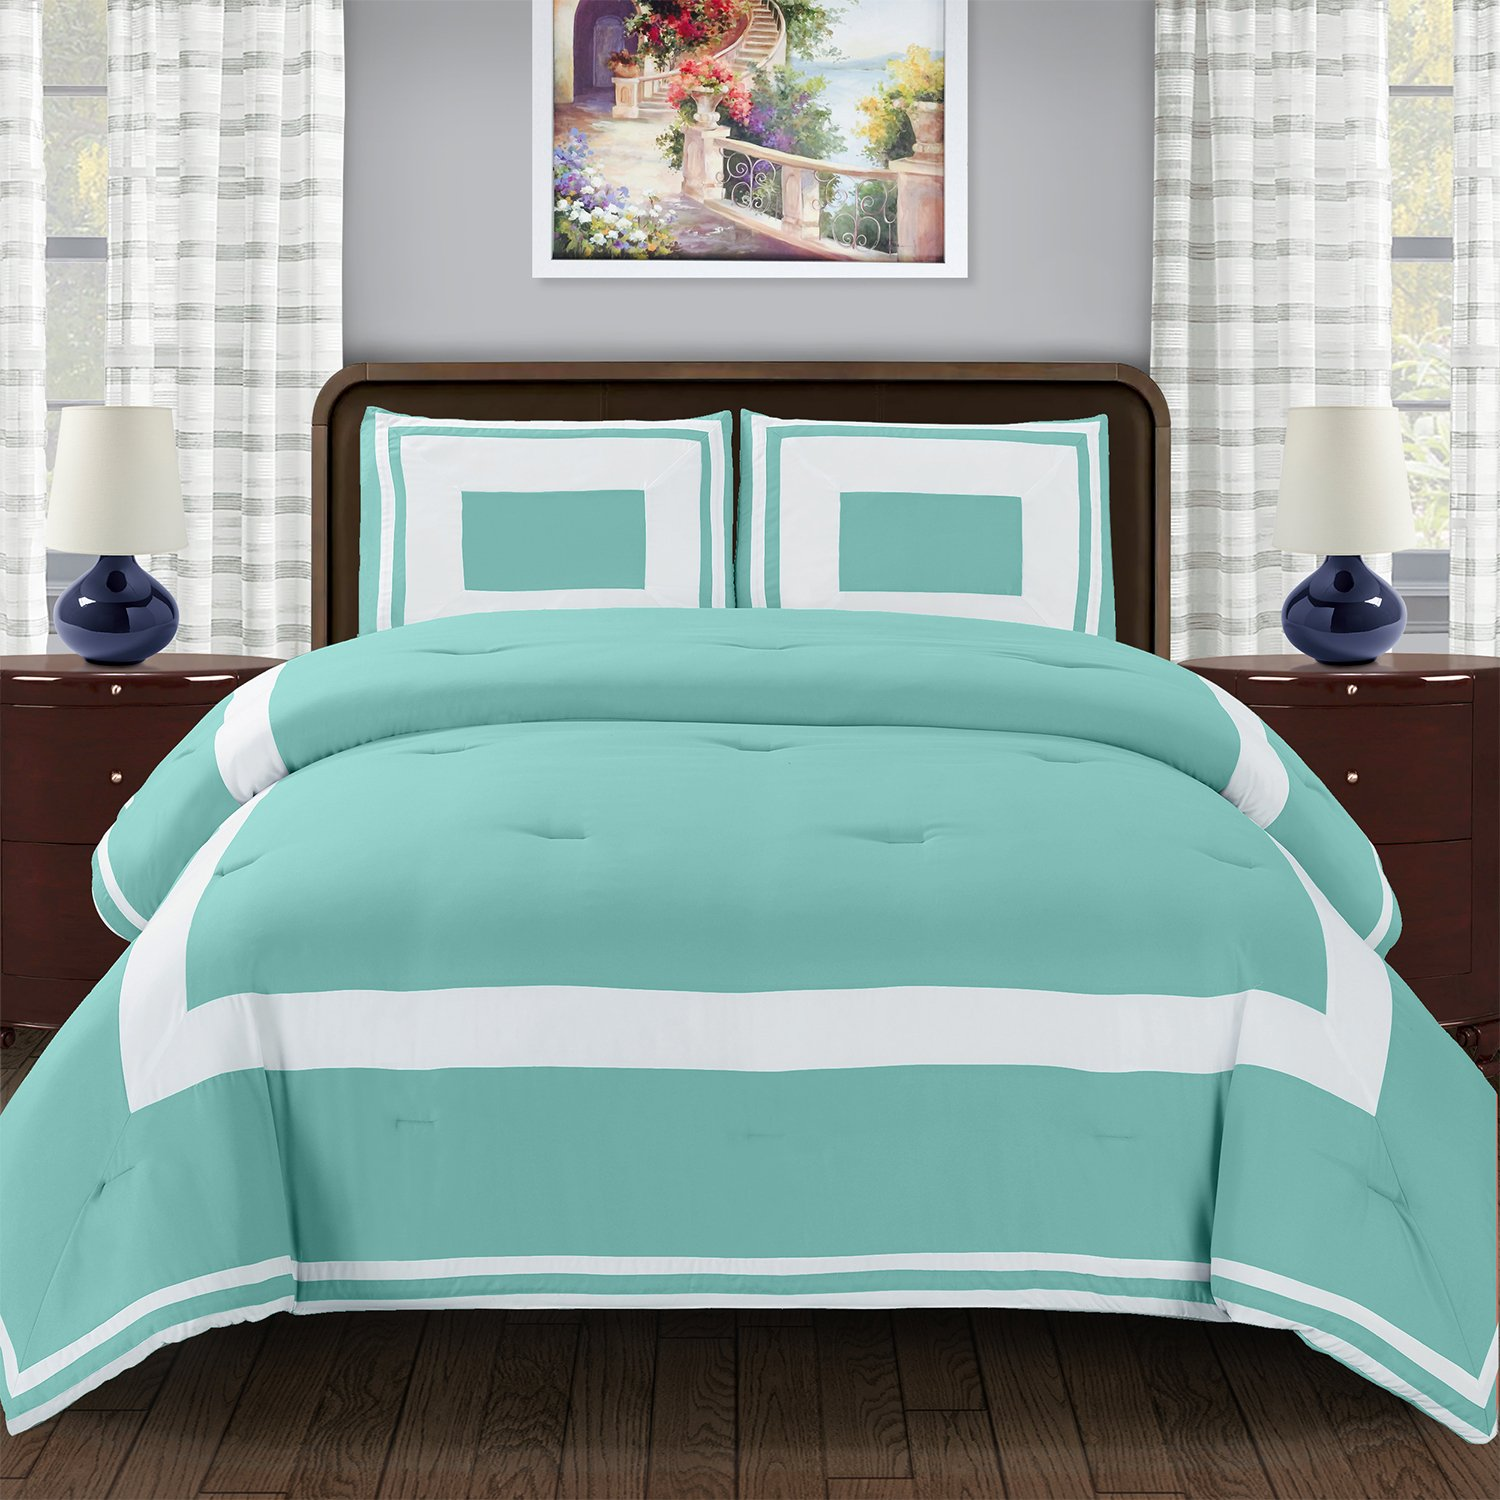 Blue Nile Mills Grammercy Down Alternative Comforter Set with Pillow Shams, Luxurious & Soft Brushed Microfiber, Wrinkle Resistant, Contemporary Block Design, Twin/Twin XL Size, Teal